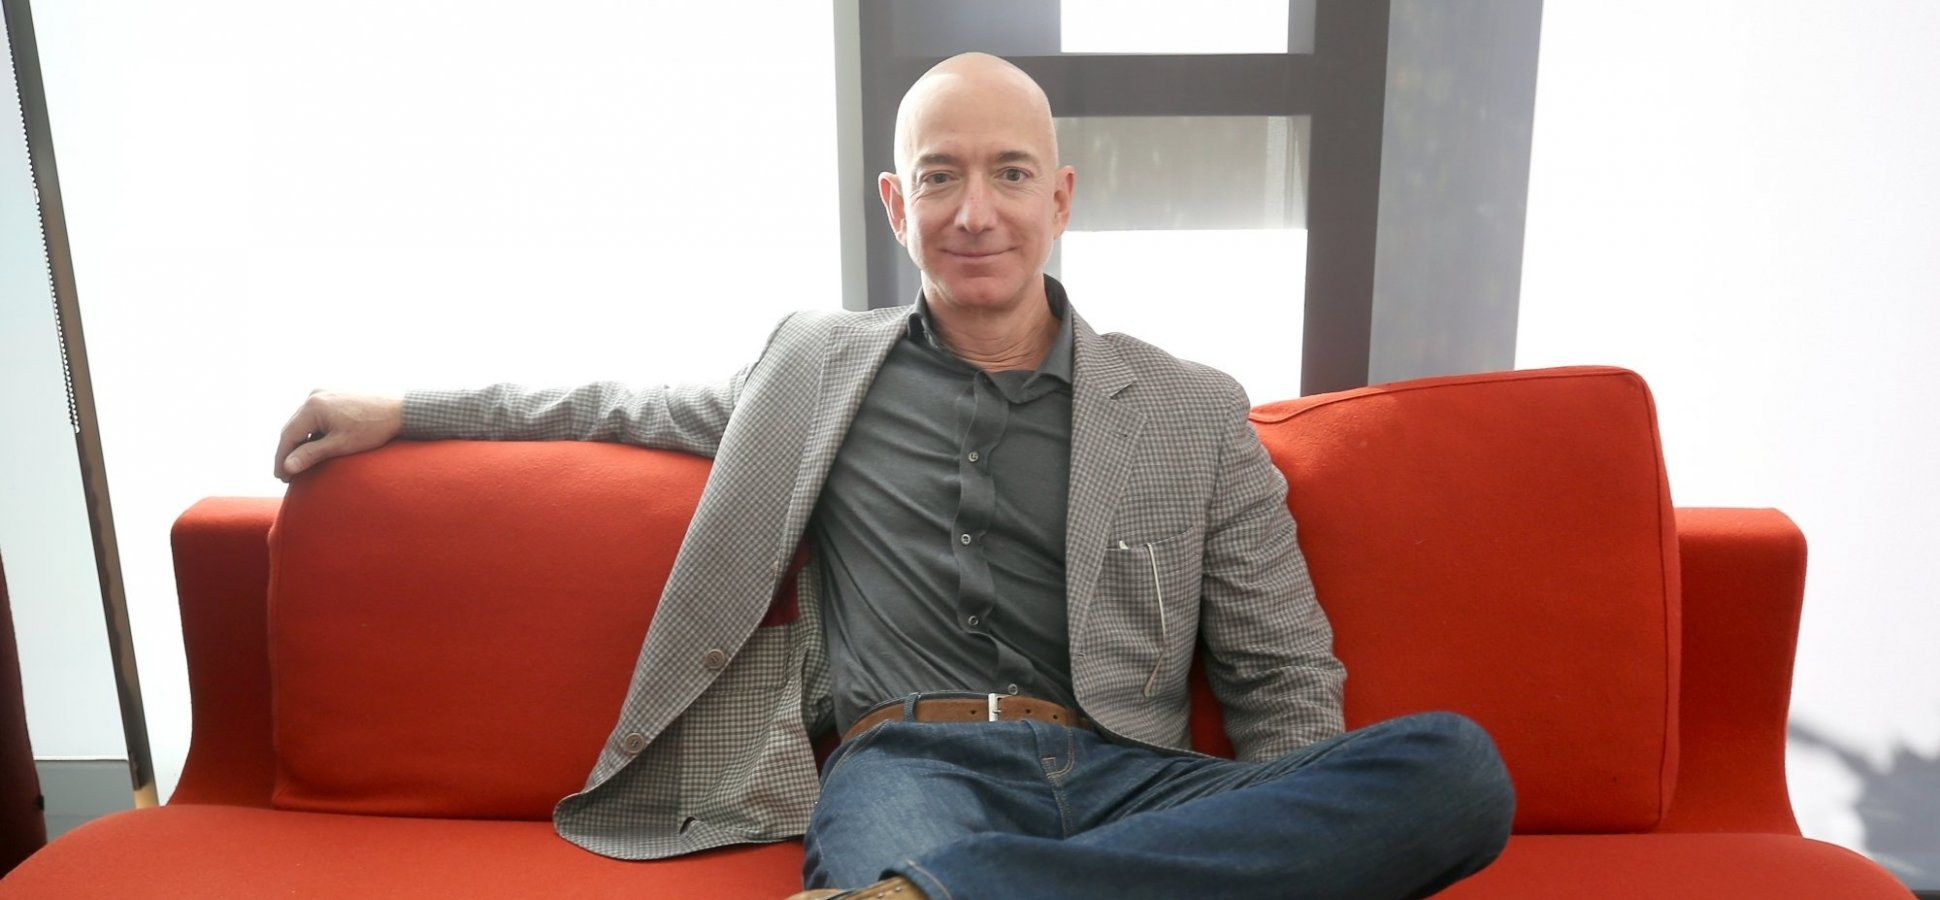 Forget 5 AM Productivity. Jeff Bezos Prefers Slow Mornings and So Should You